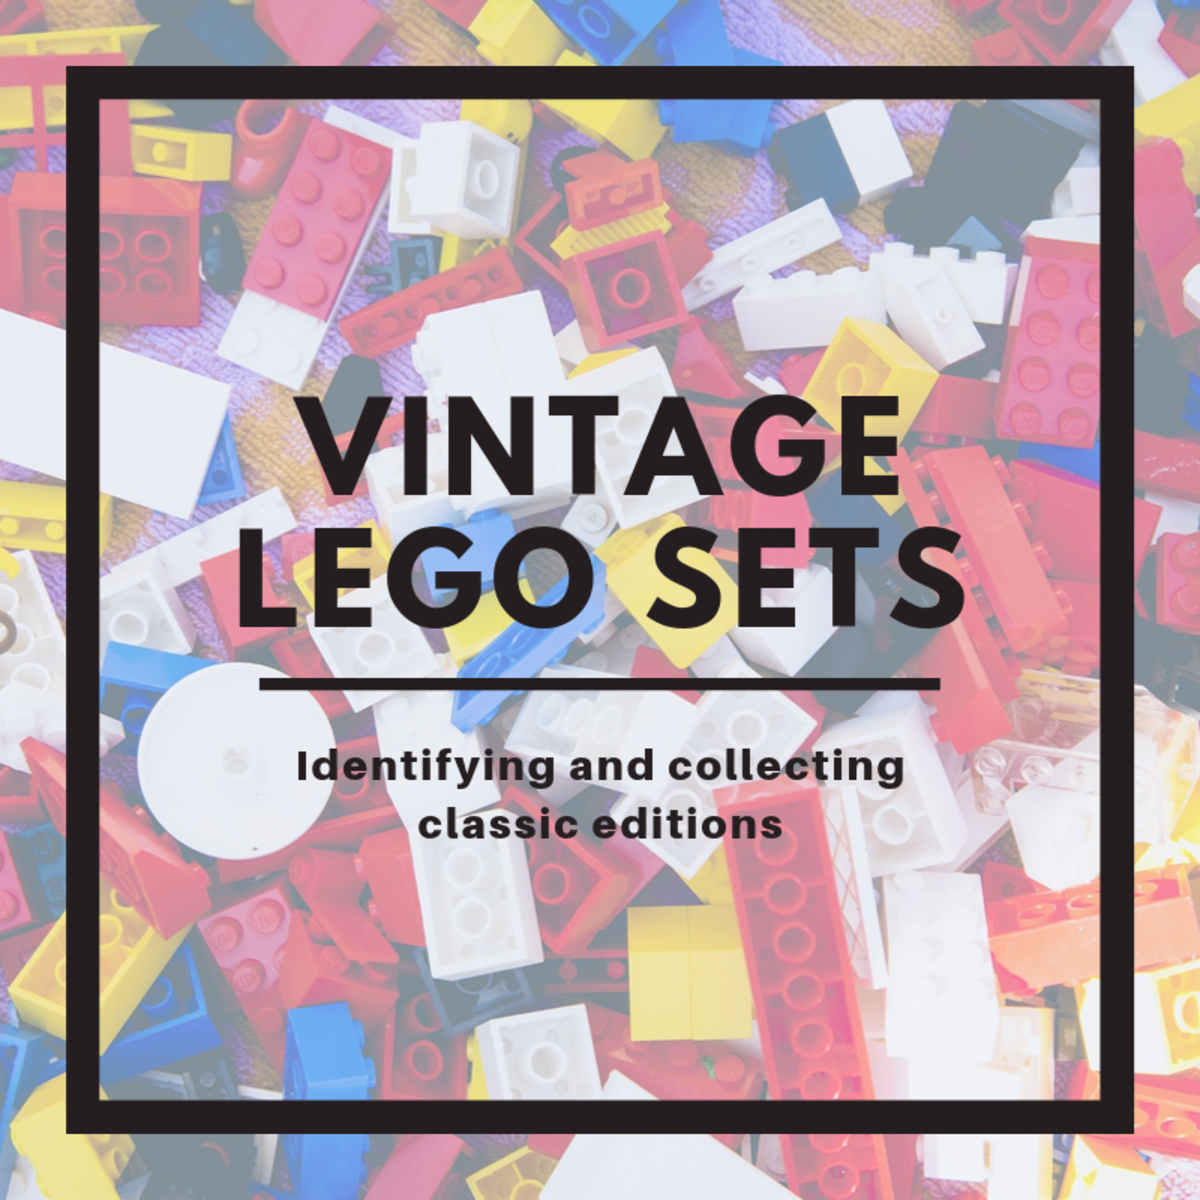 This article will break down some of the history of the Lego company and provide some information on how to identify vintage Lego sets.